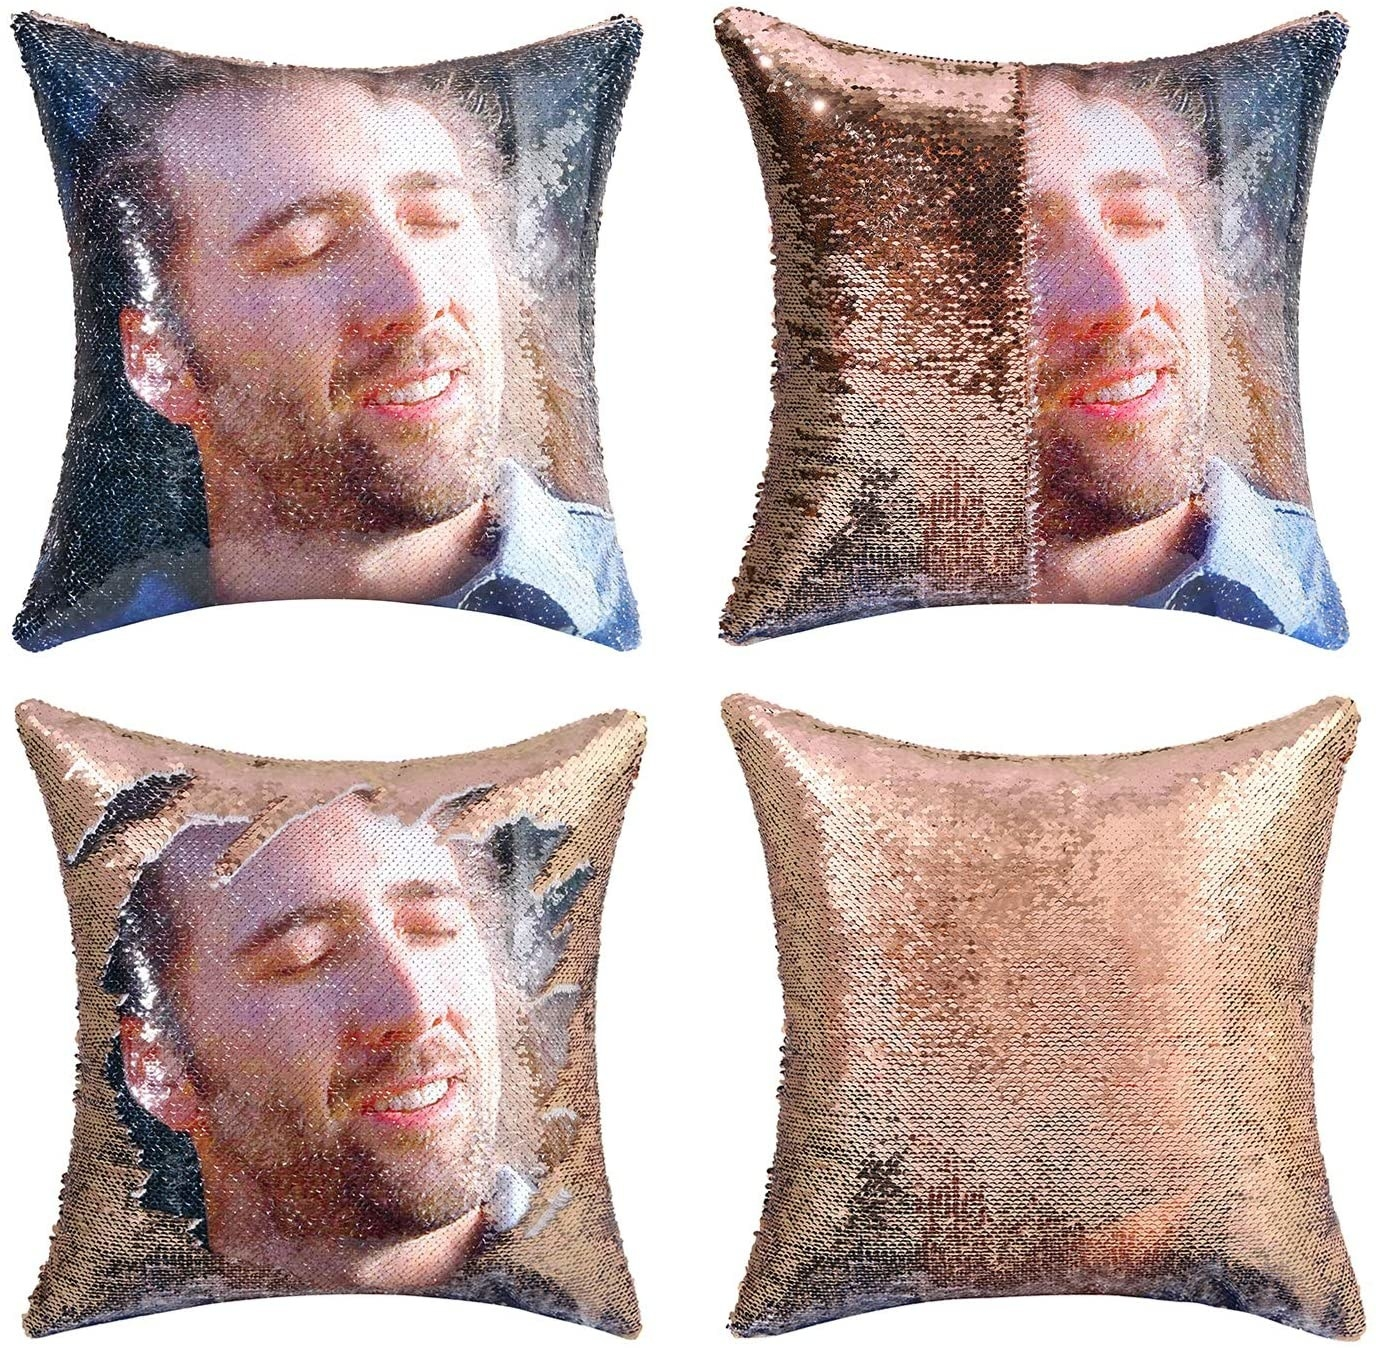 gold sequin pillow cover that when is stroked reveals a pic of Nic Cage in Conair